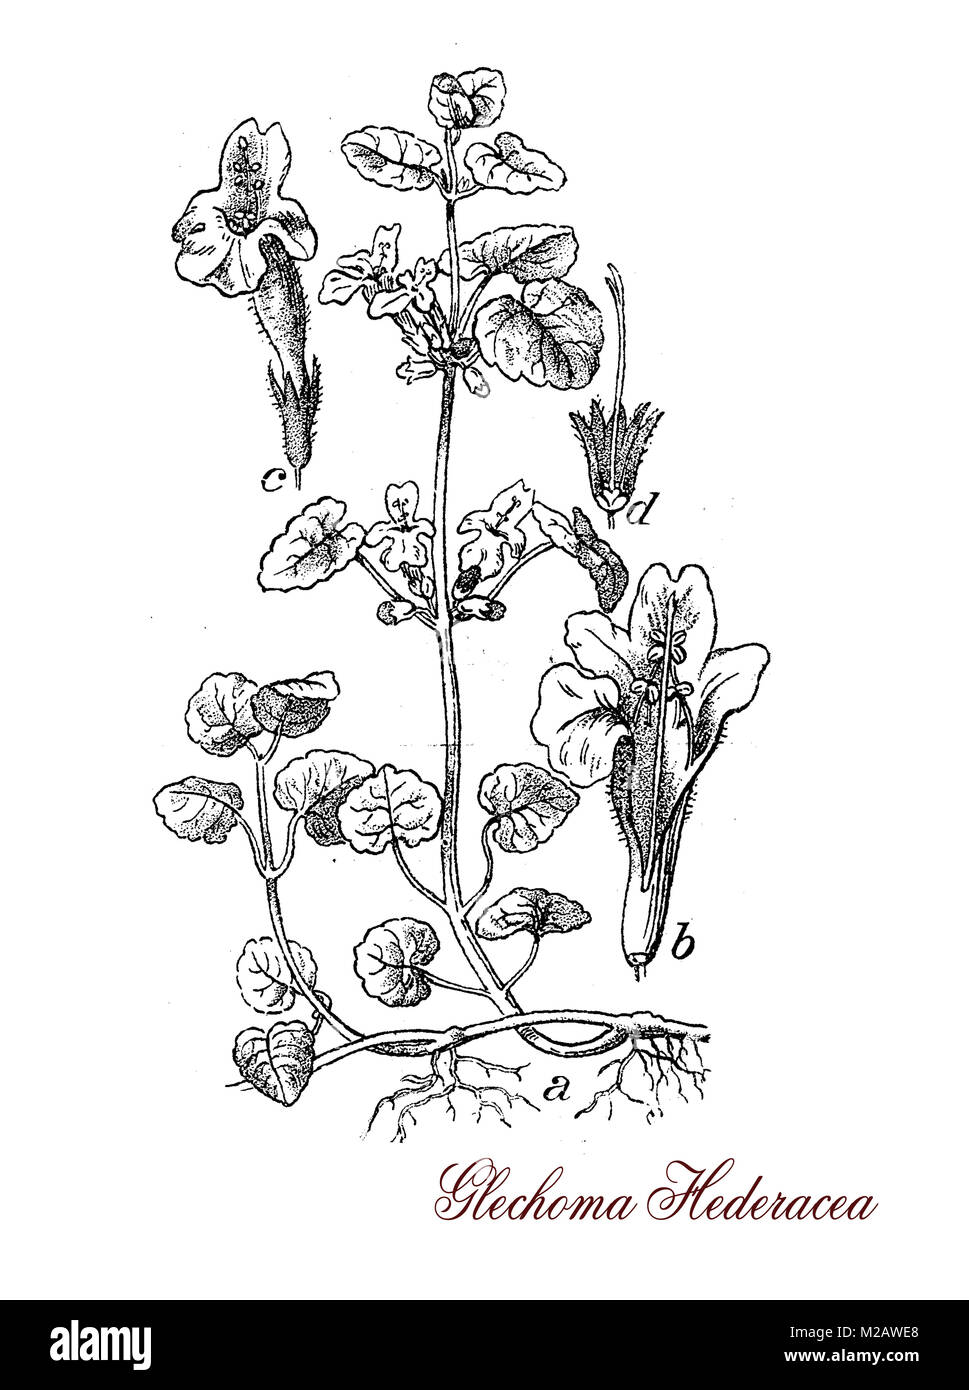 Vintage engraving of Glechoma ederacea, aromatic plant used as medicinal, salad green and as garden decoration - Stock Image